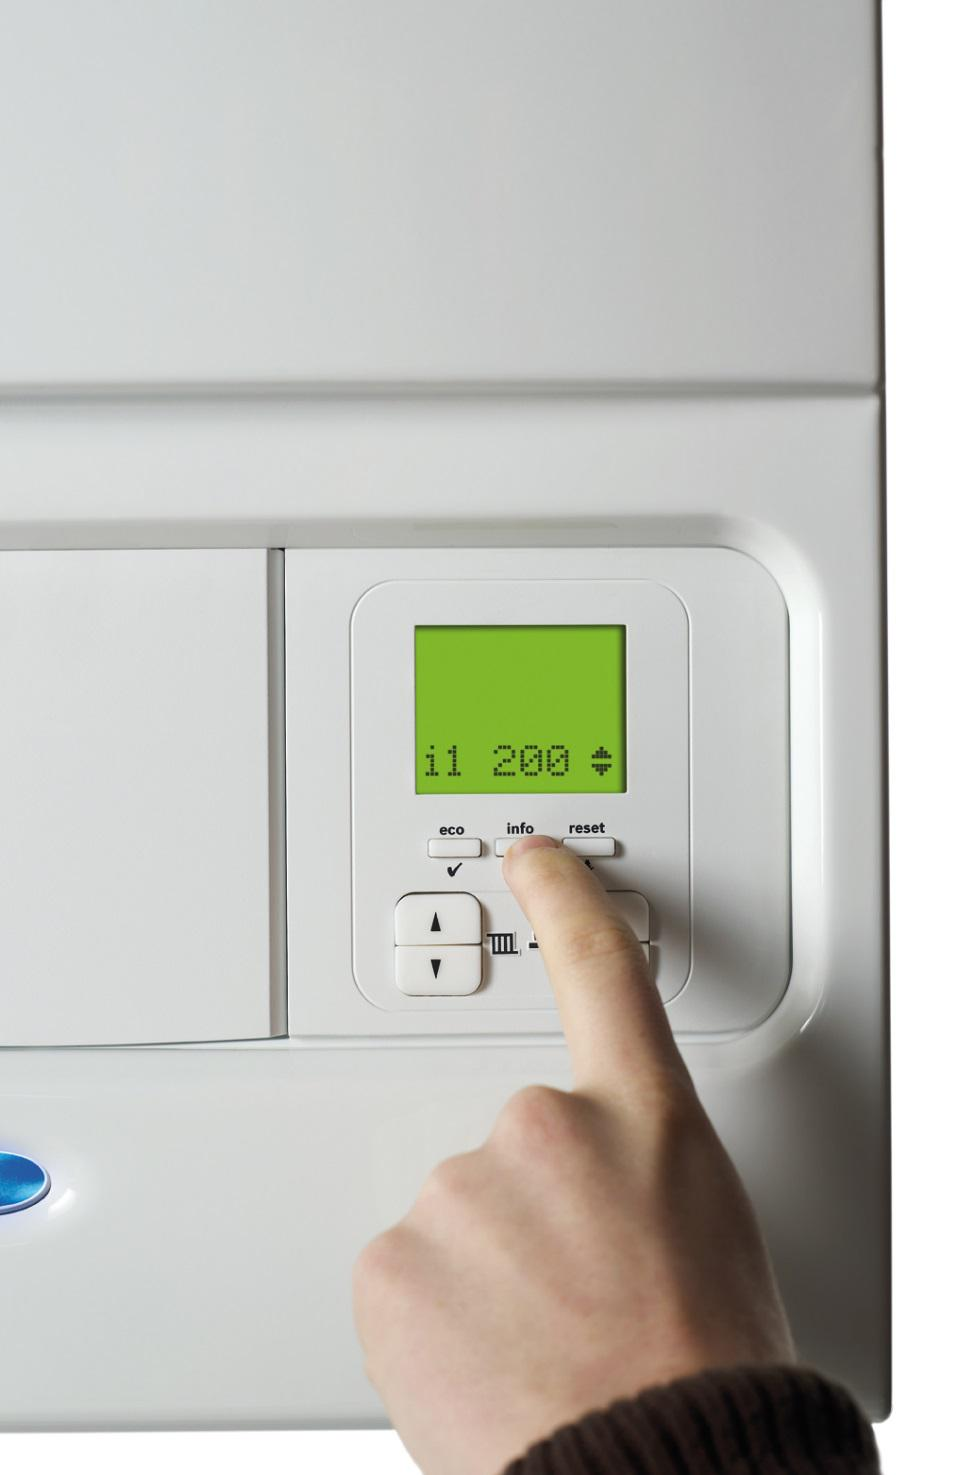 Greenstar I Troubleshooting Worcester Bosch Group Ivtrouble Shooting Your Electric Fence How Do Find Out If There Is A Problem With My Boiler